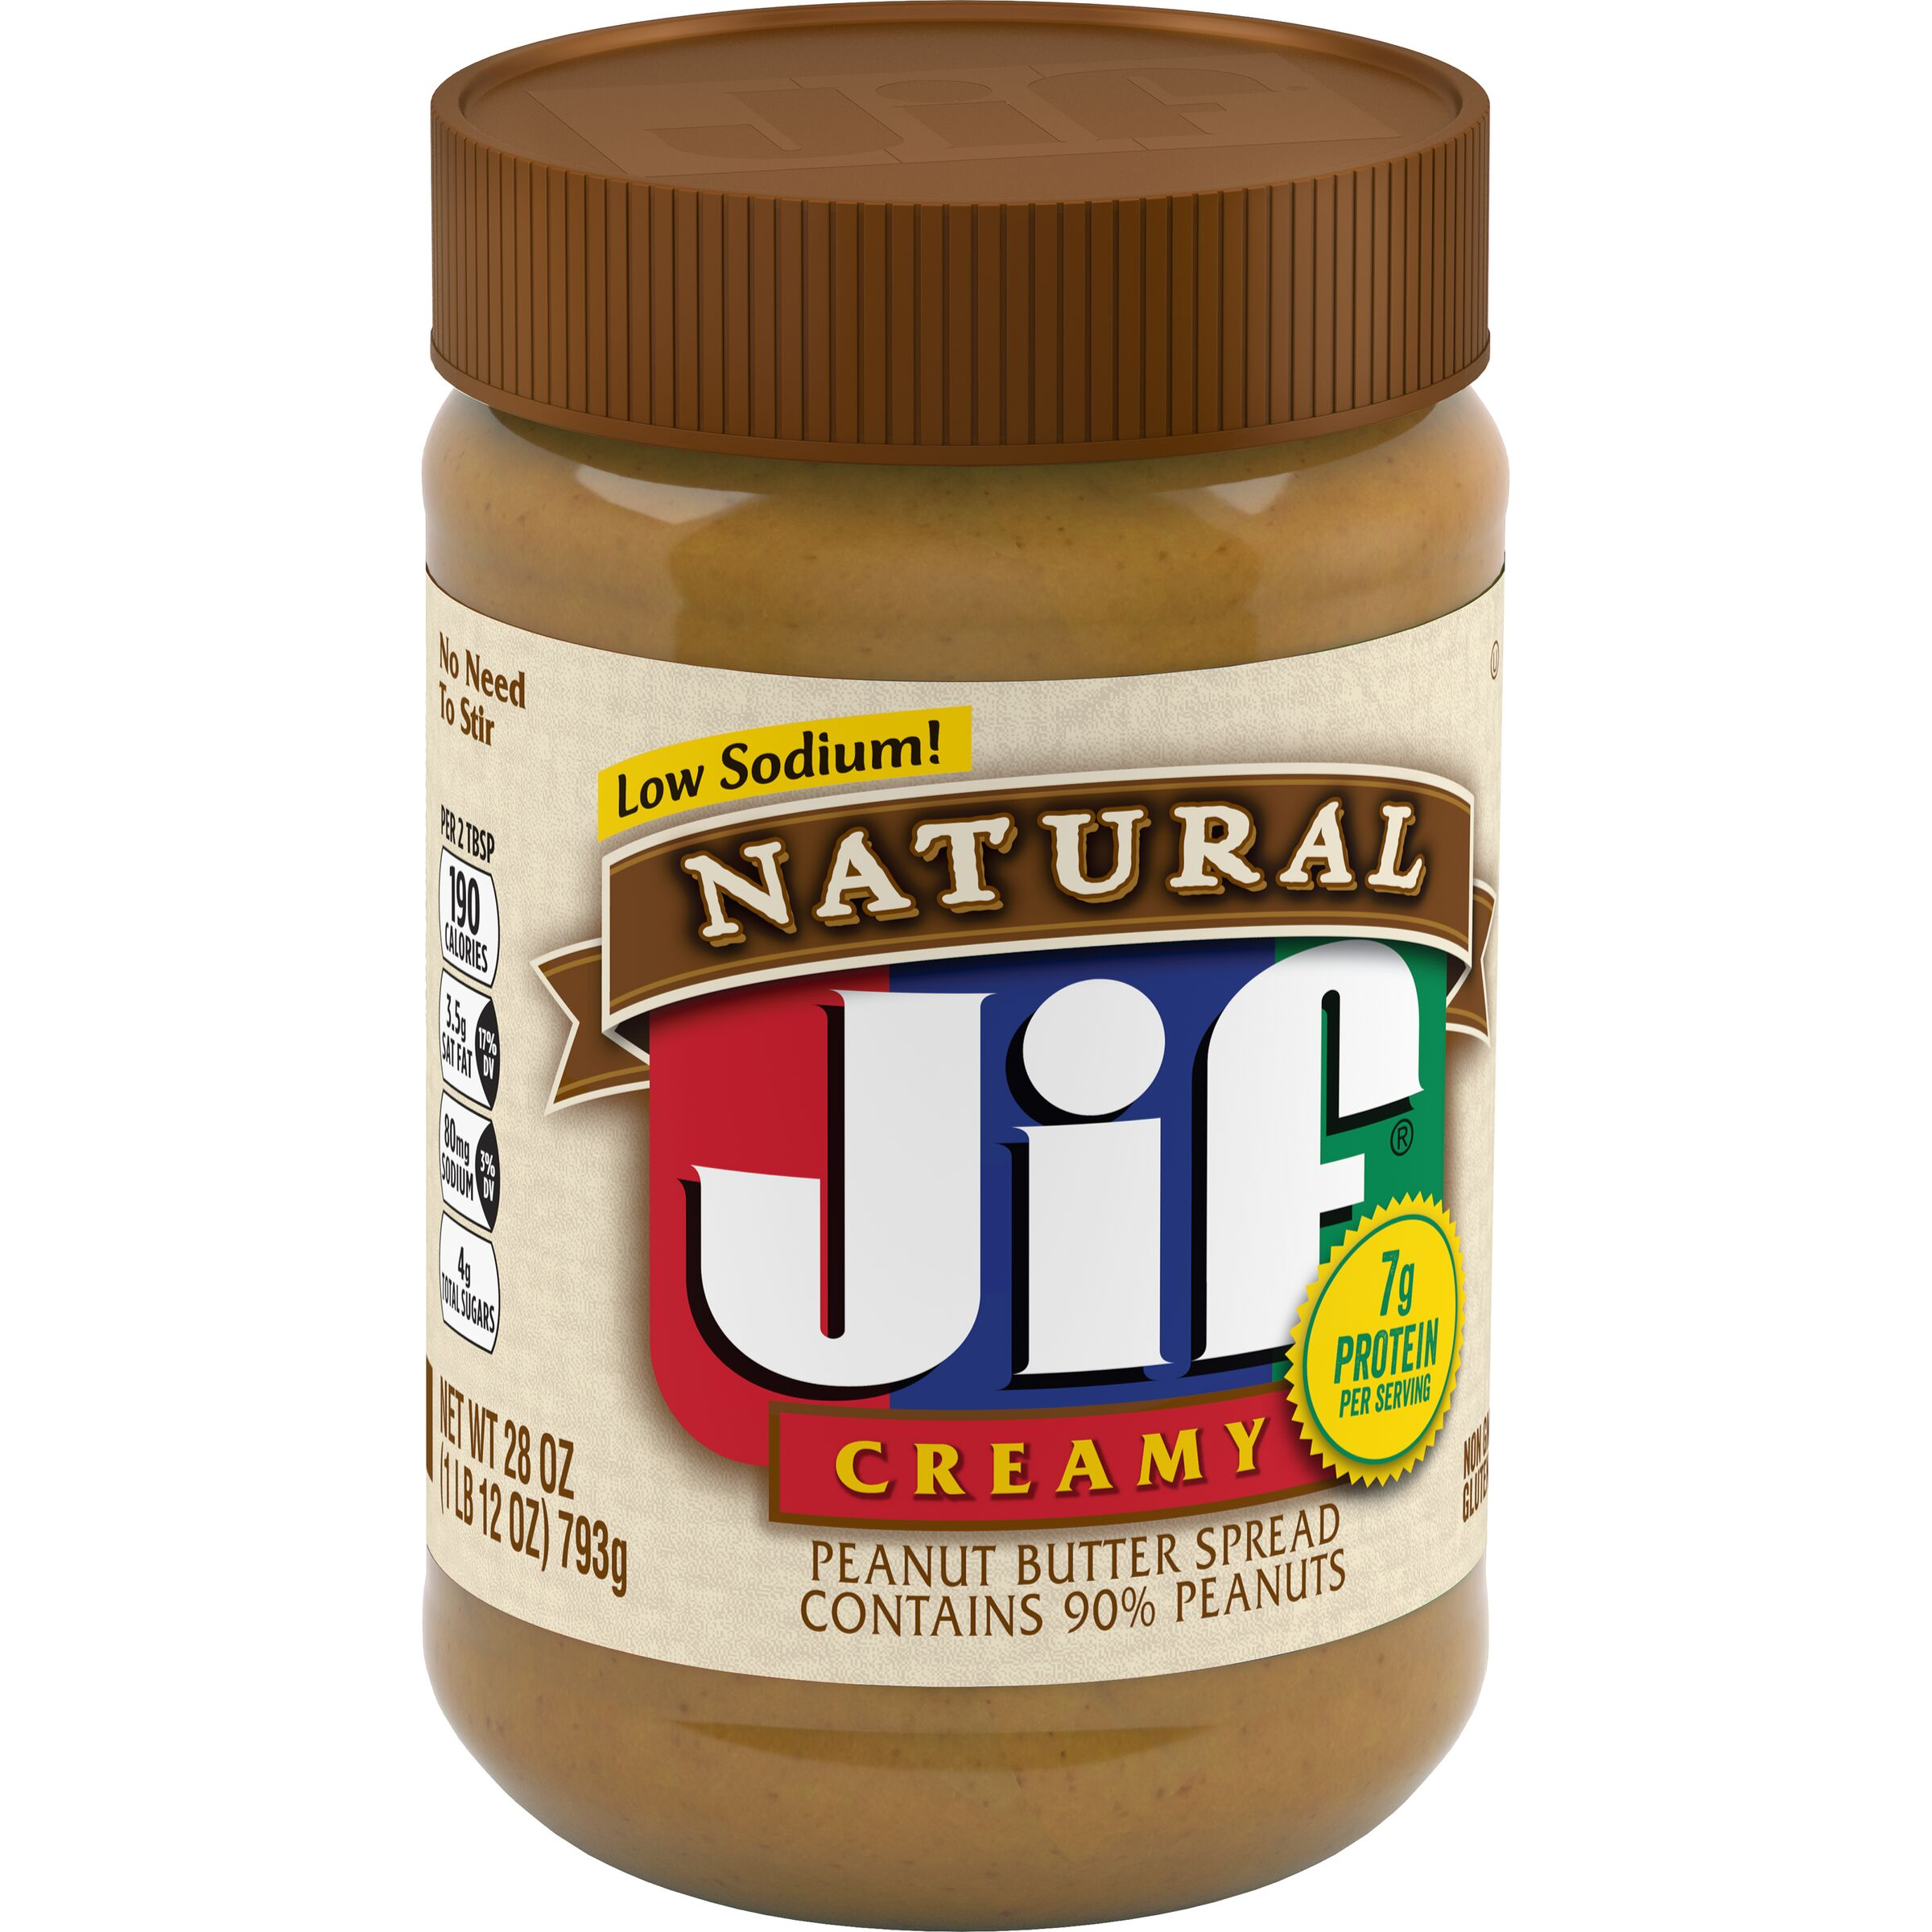 Jif<sup>&reg;</sup> Natural Natural Creamy Peanut Butter Spread Contains 90% Peanuts